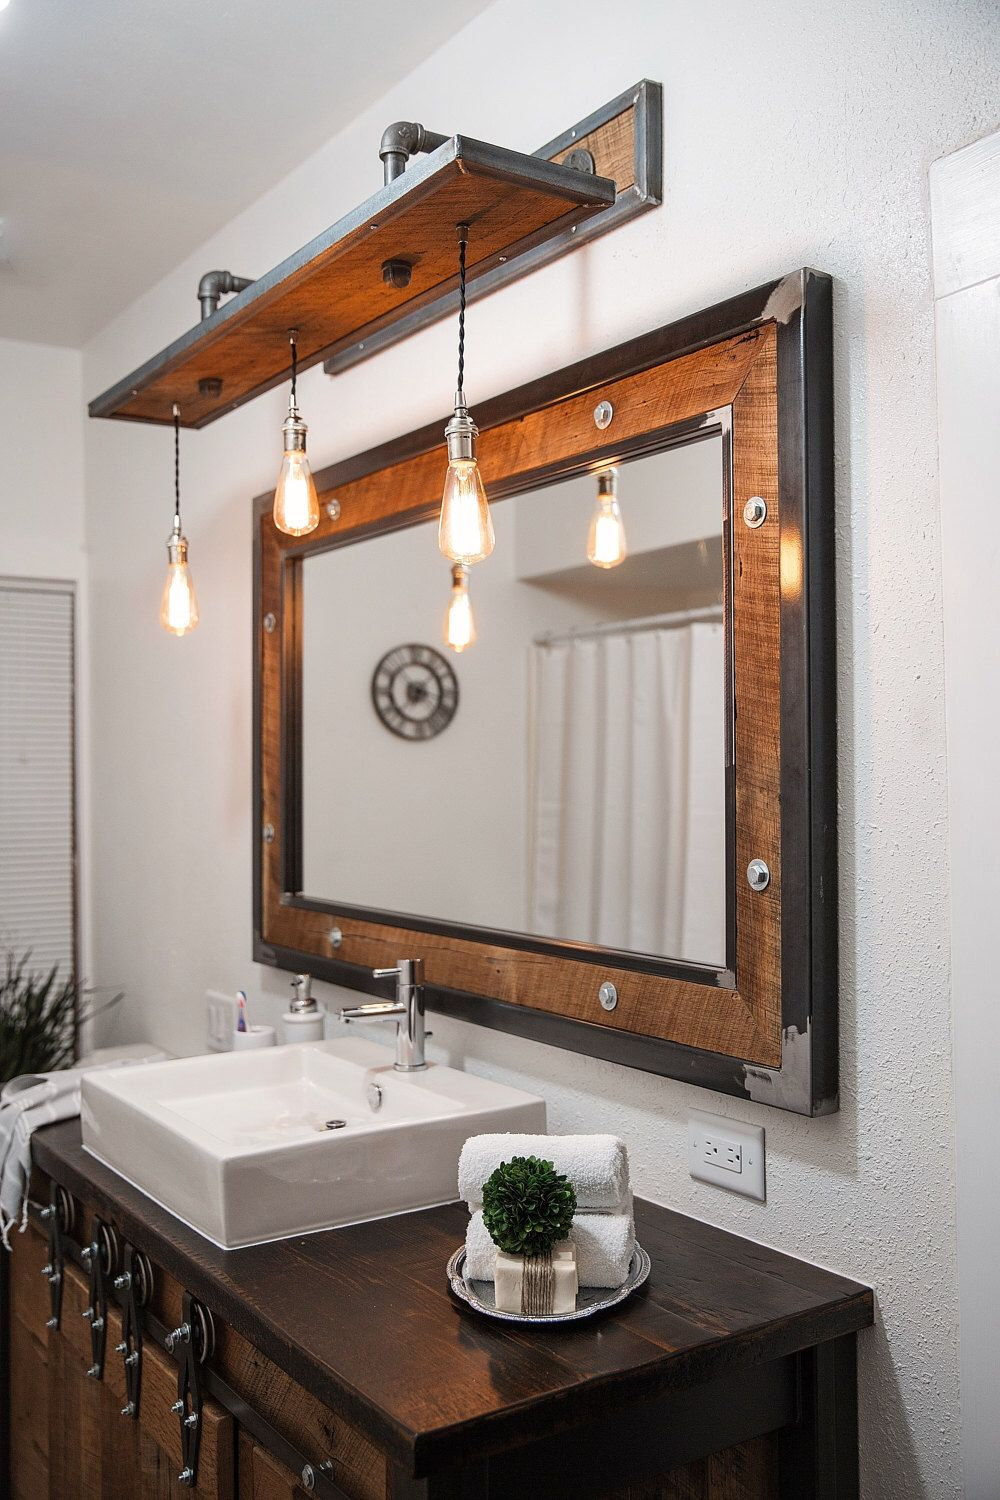 Rustic Industrial Bathroom Vanity Lighting